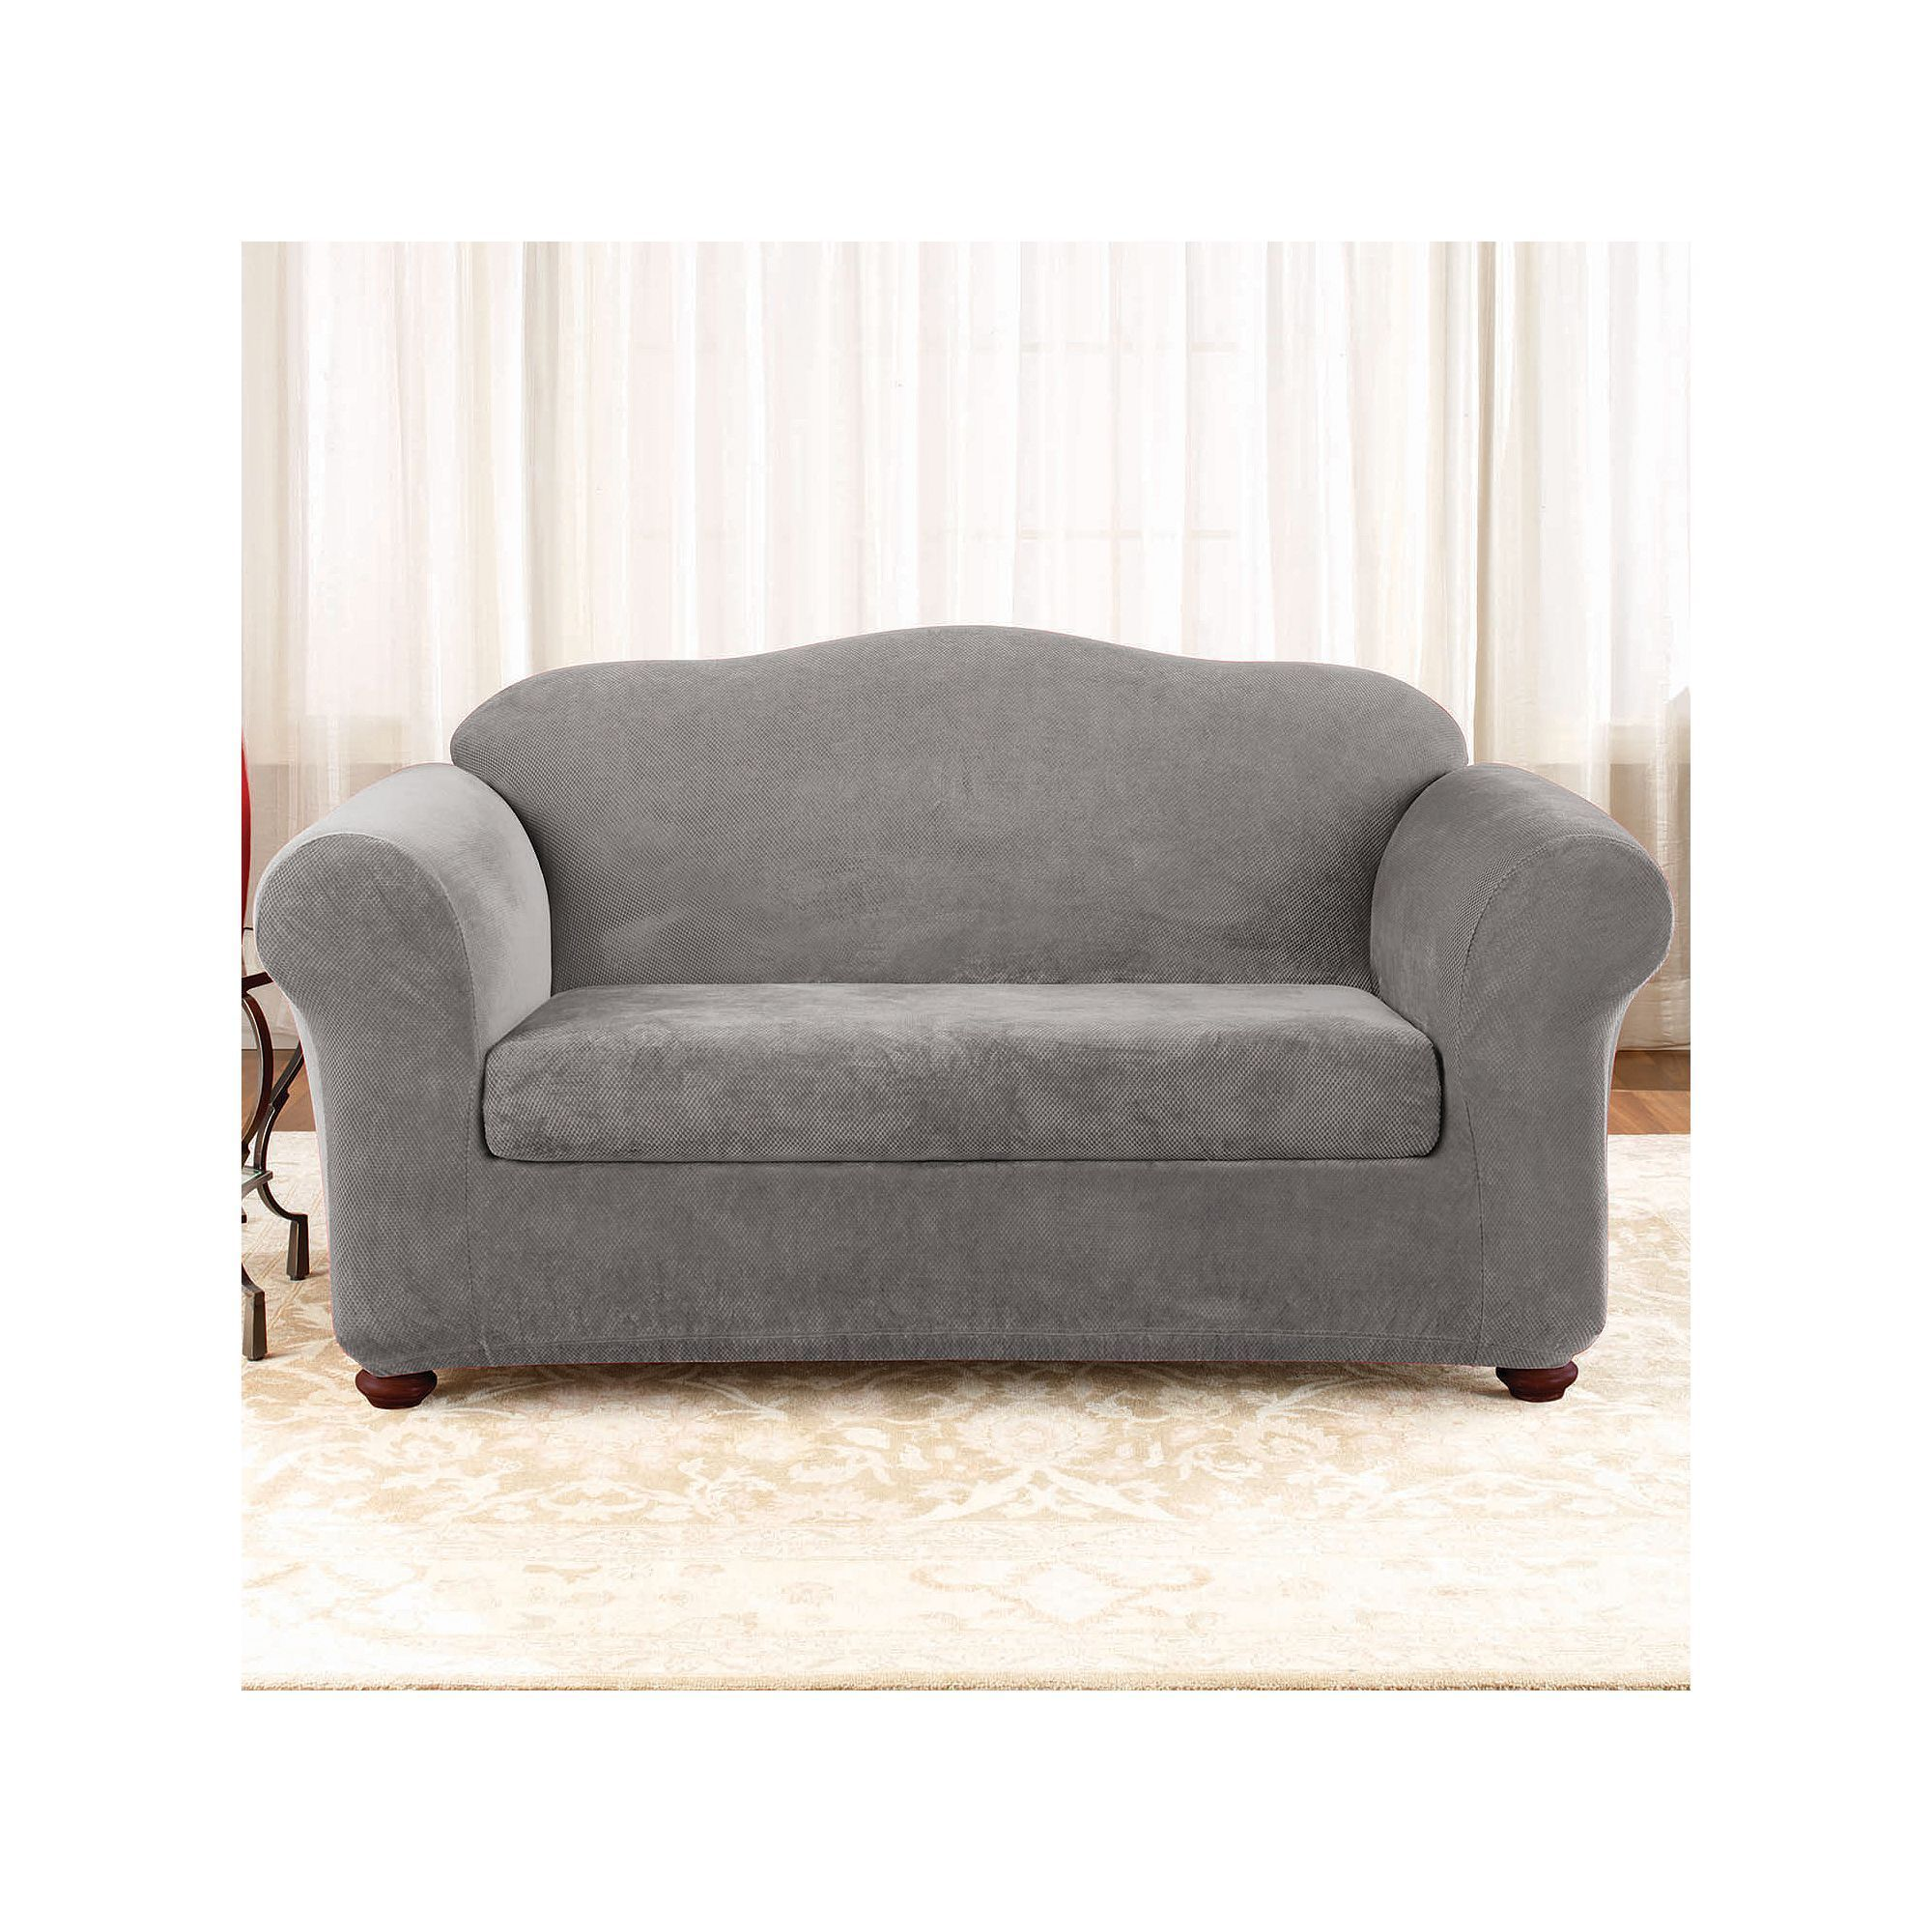 furniture barletta grey blue full by of on ottomans reversible velvet navy slipcover zipline sleeper with container loveseat oversized ebay modular jaxx size clearance